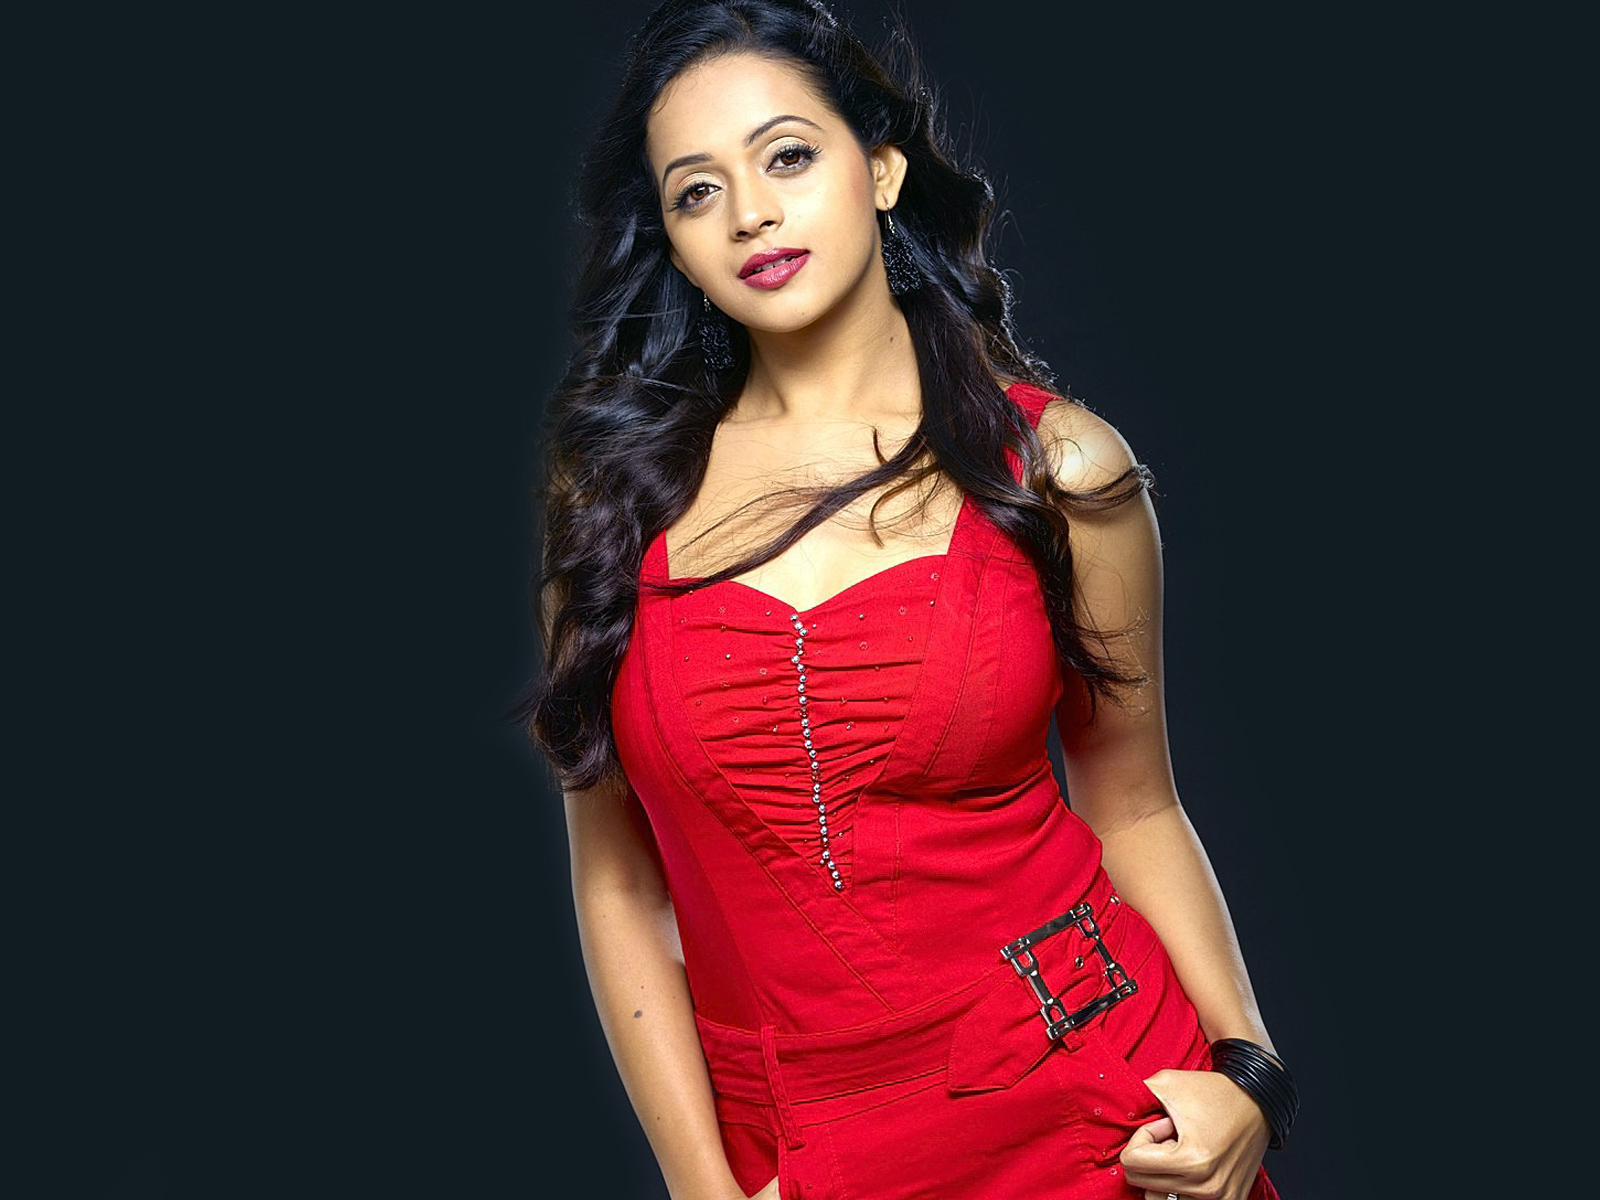 Bollywood Actress Hd Wallpapers 1366x768 Hd Wallpapers 100 High